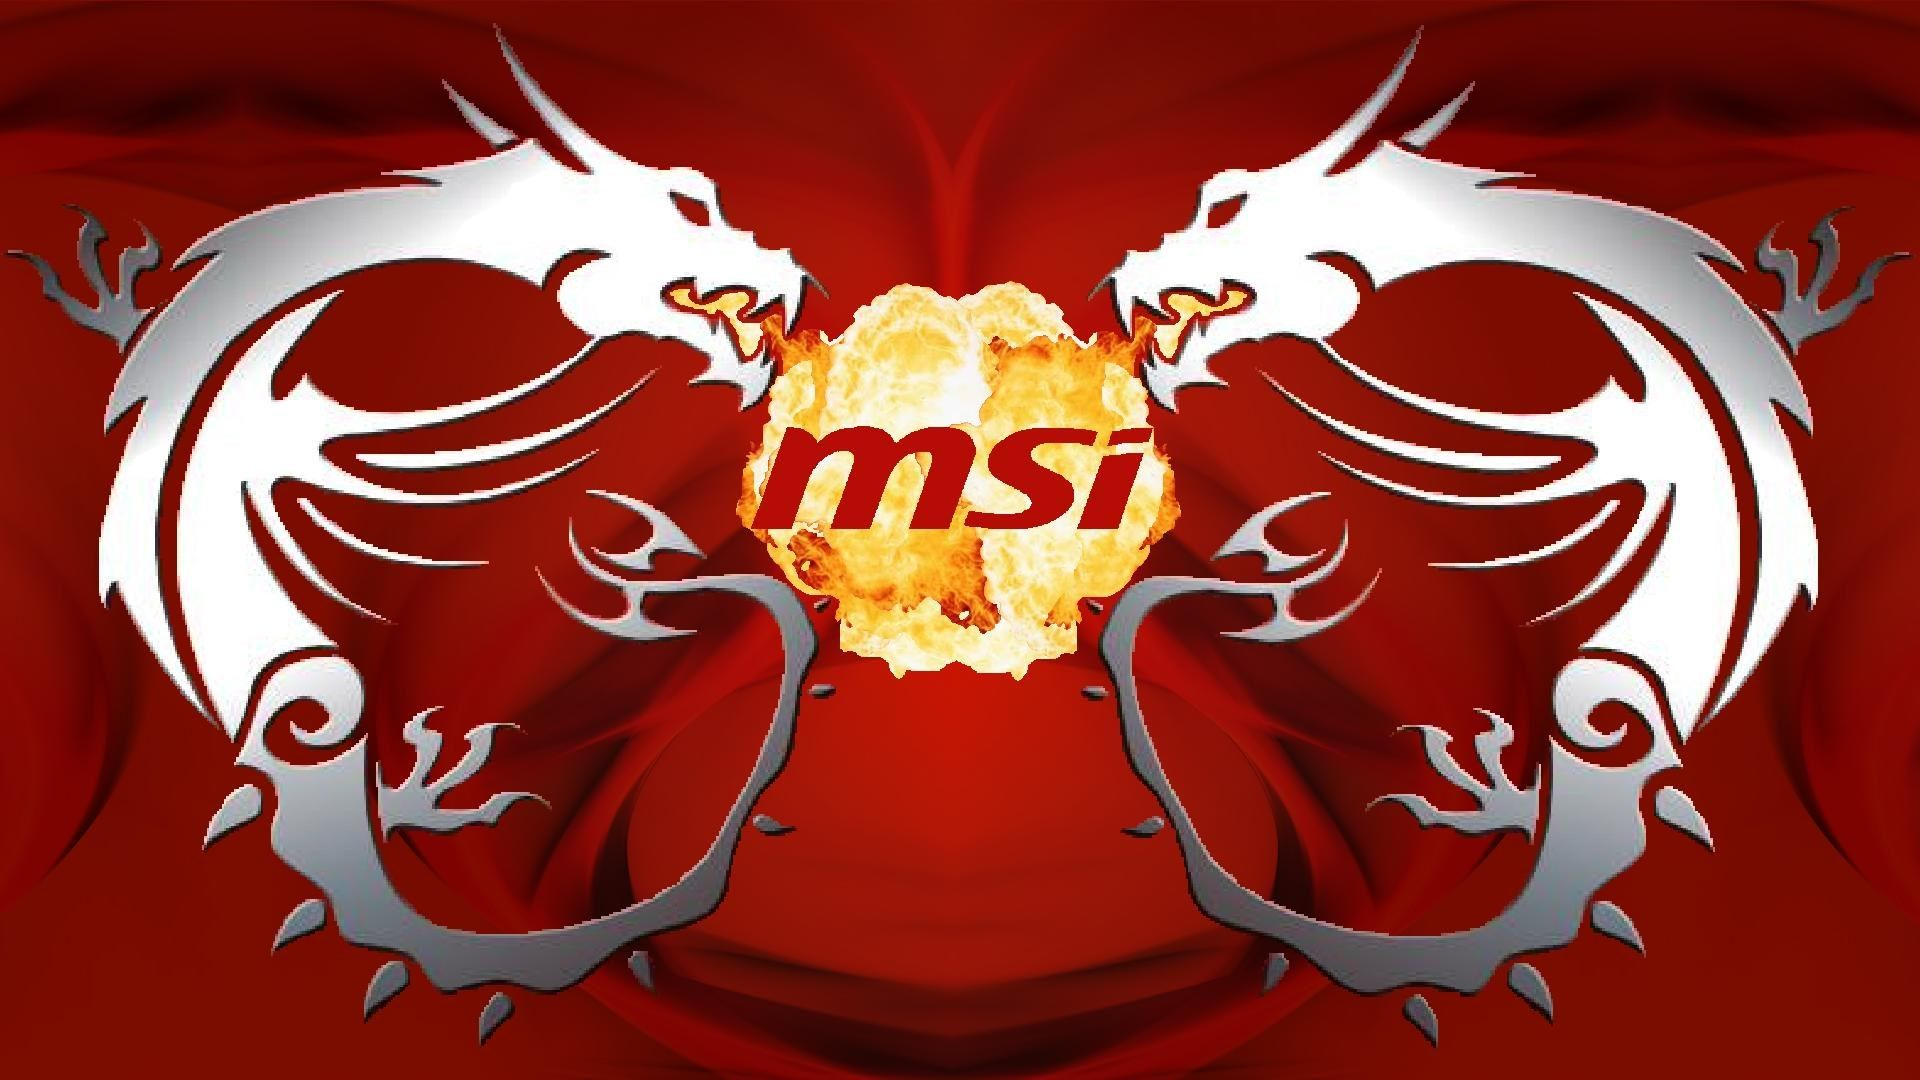 Msi Red Dragon Wallpaper